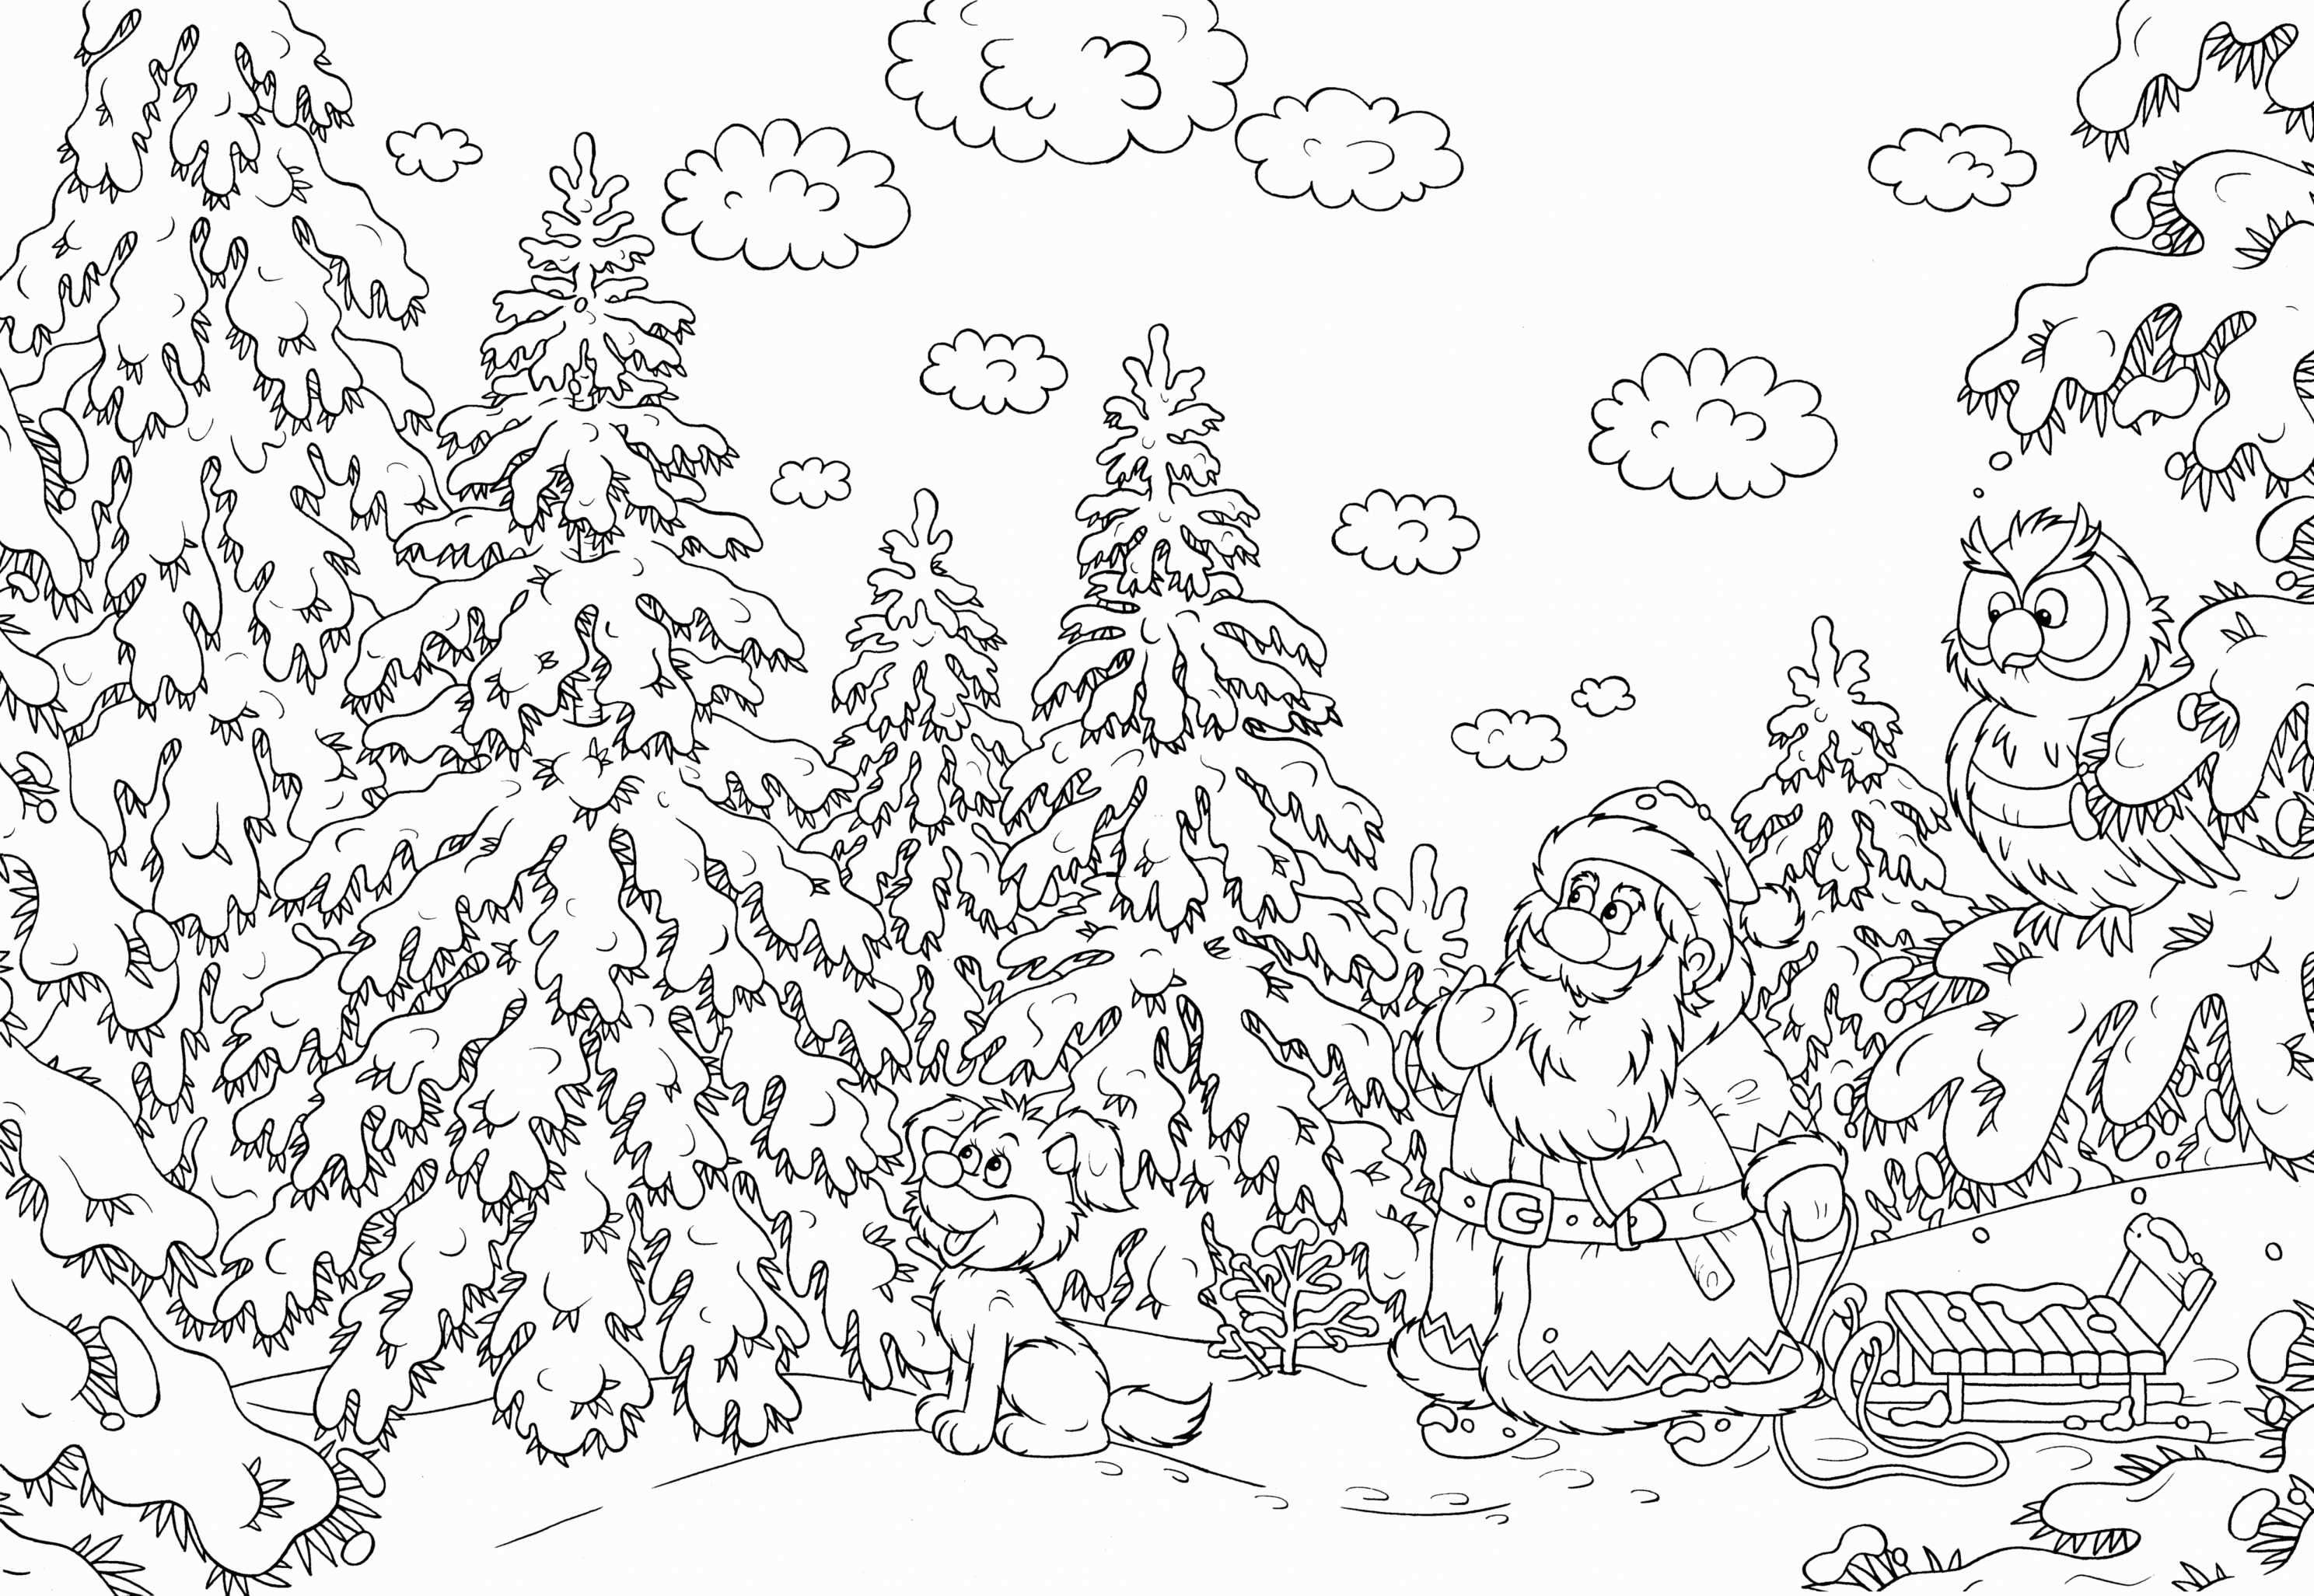 Easy Christmas Coloring Pages For Adults With Colouring Hard Printable Educations Kids